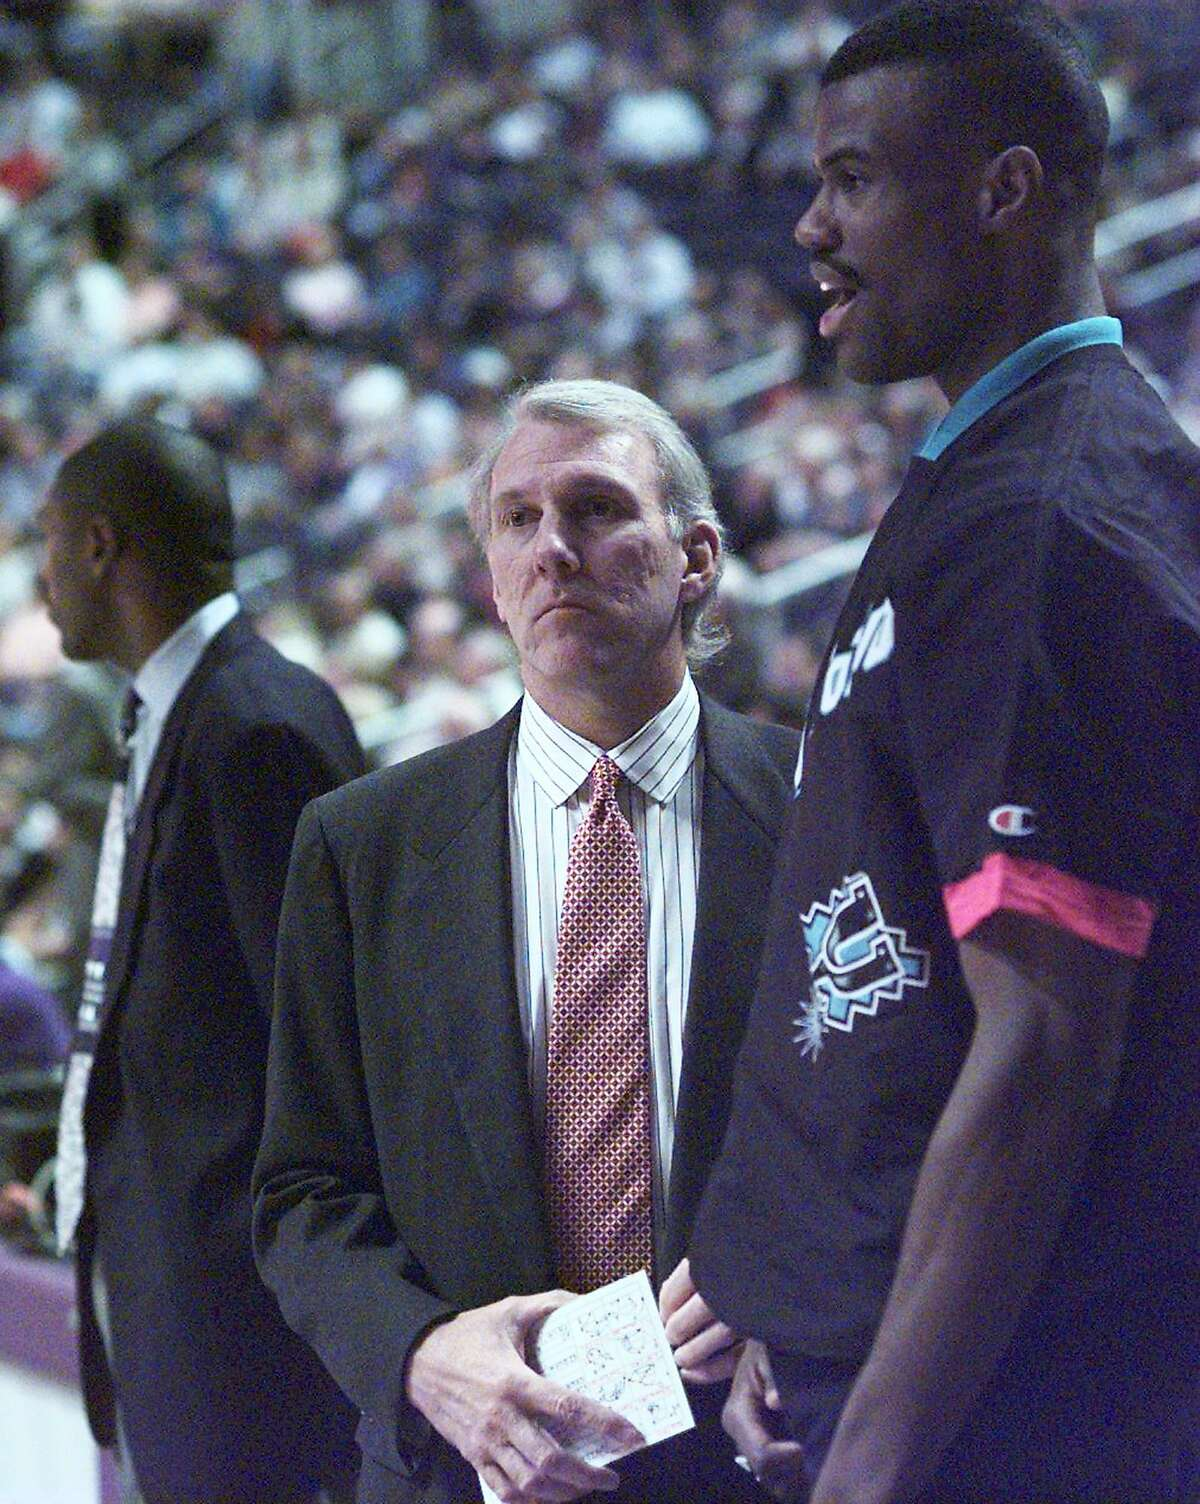 New Coach Gregg Popovich and David Robinson confer just before the start of the game in Phoenix against the Suns on Dec. 10, 1996, which the Spurs lost.